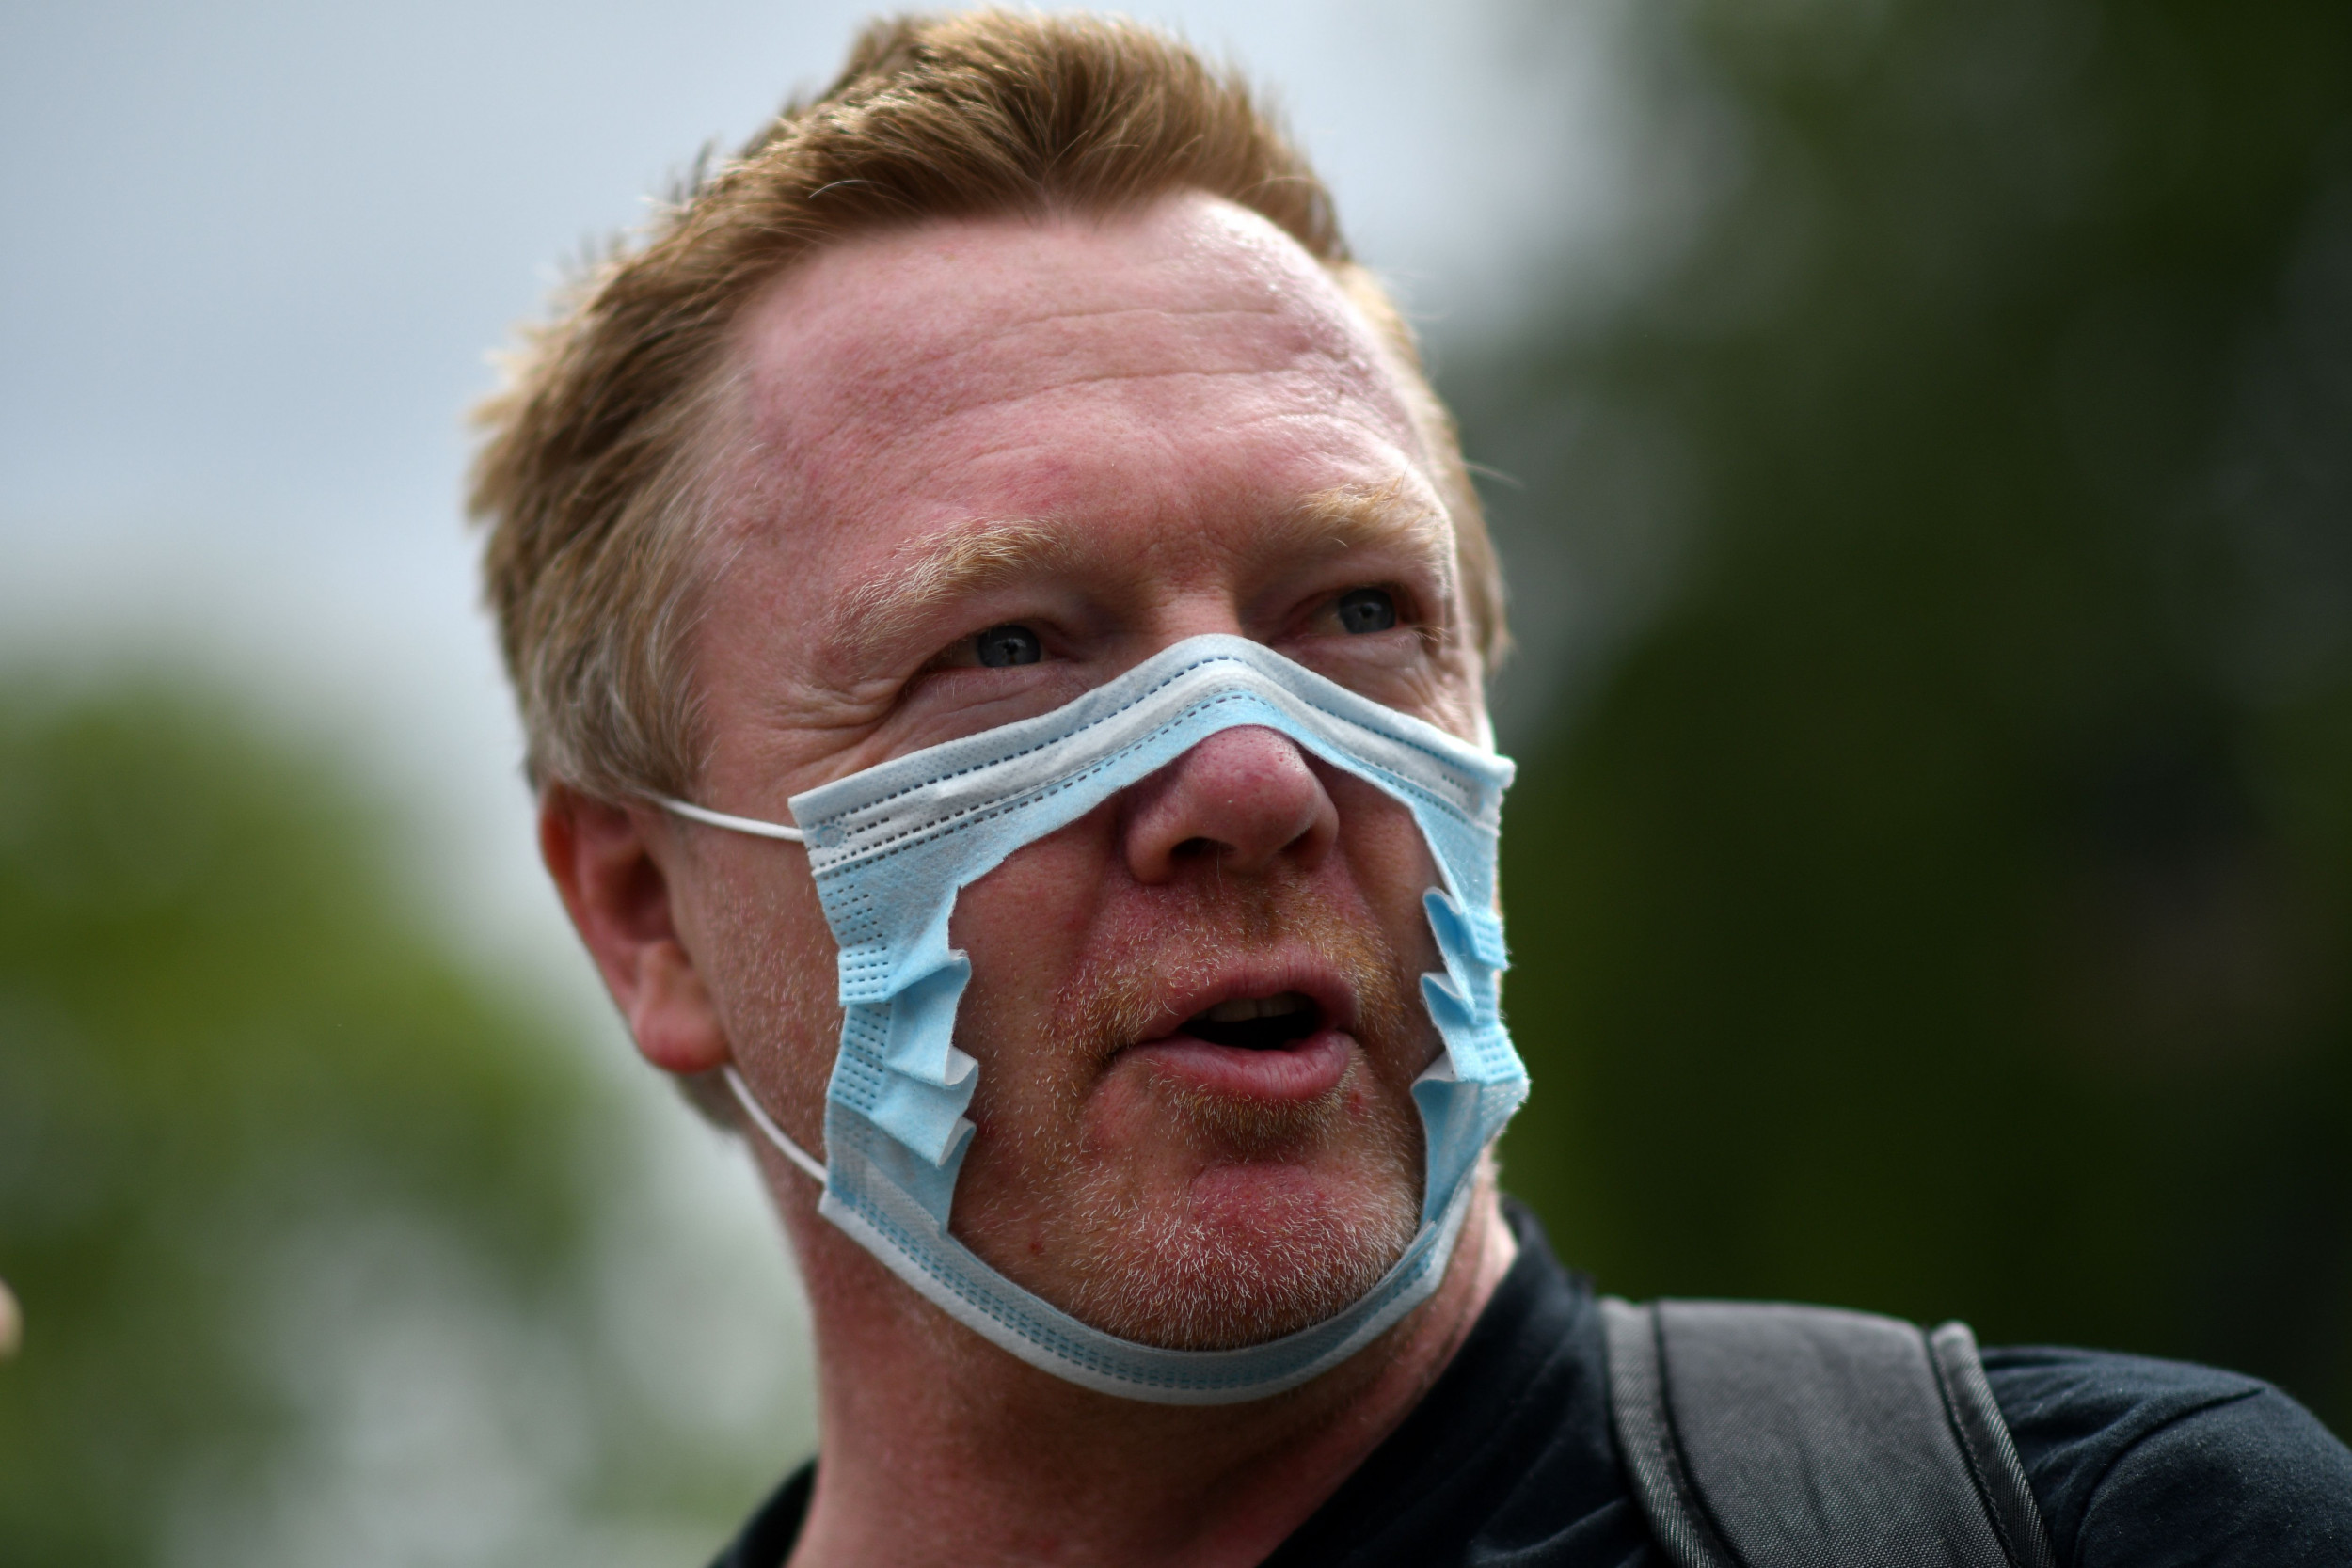 Hundreds Protest Against Having to Wear Face Masks in England